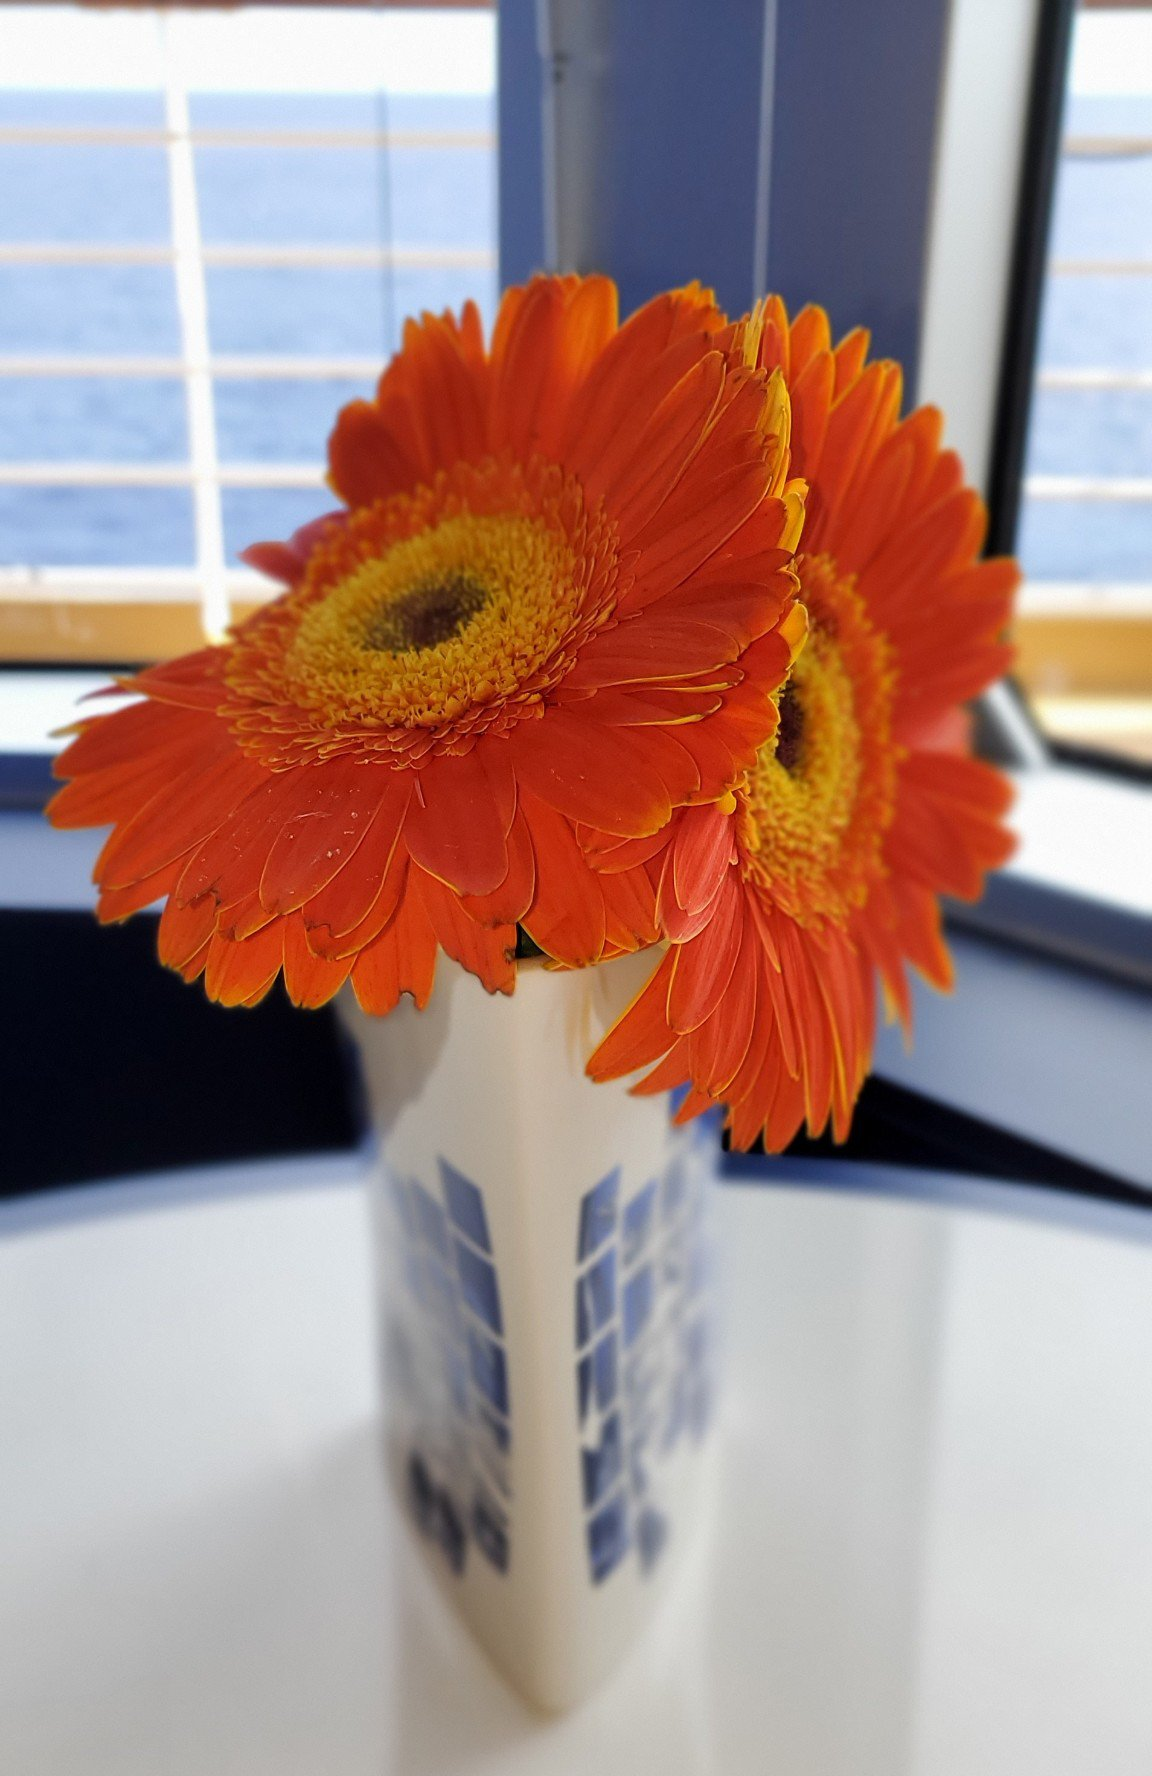 Colorful Touches in Grand Dutch Cafe on Nieuw Statendam